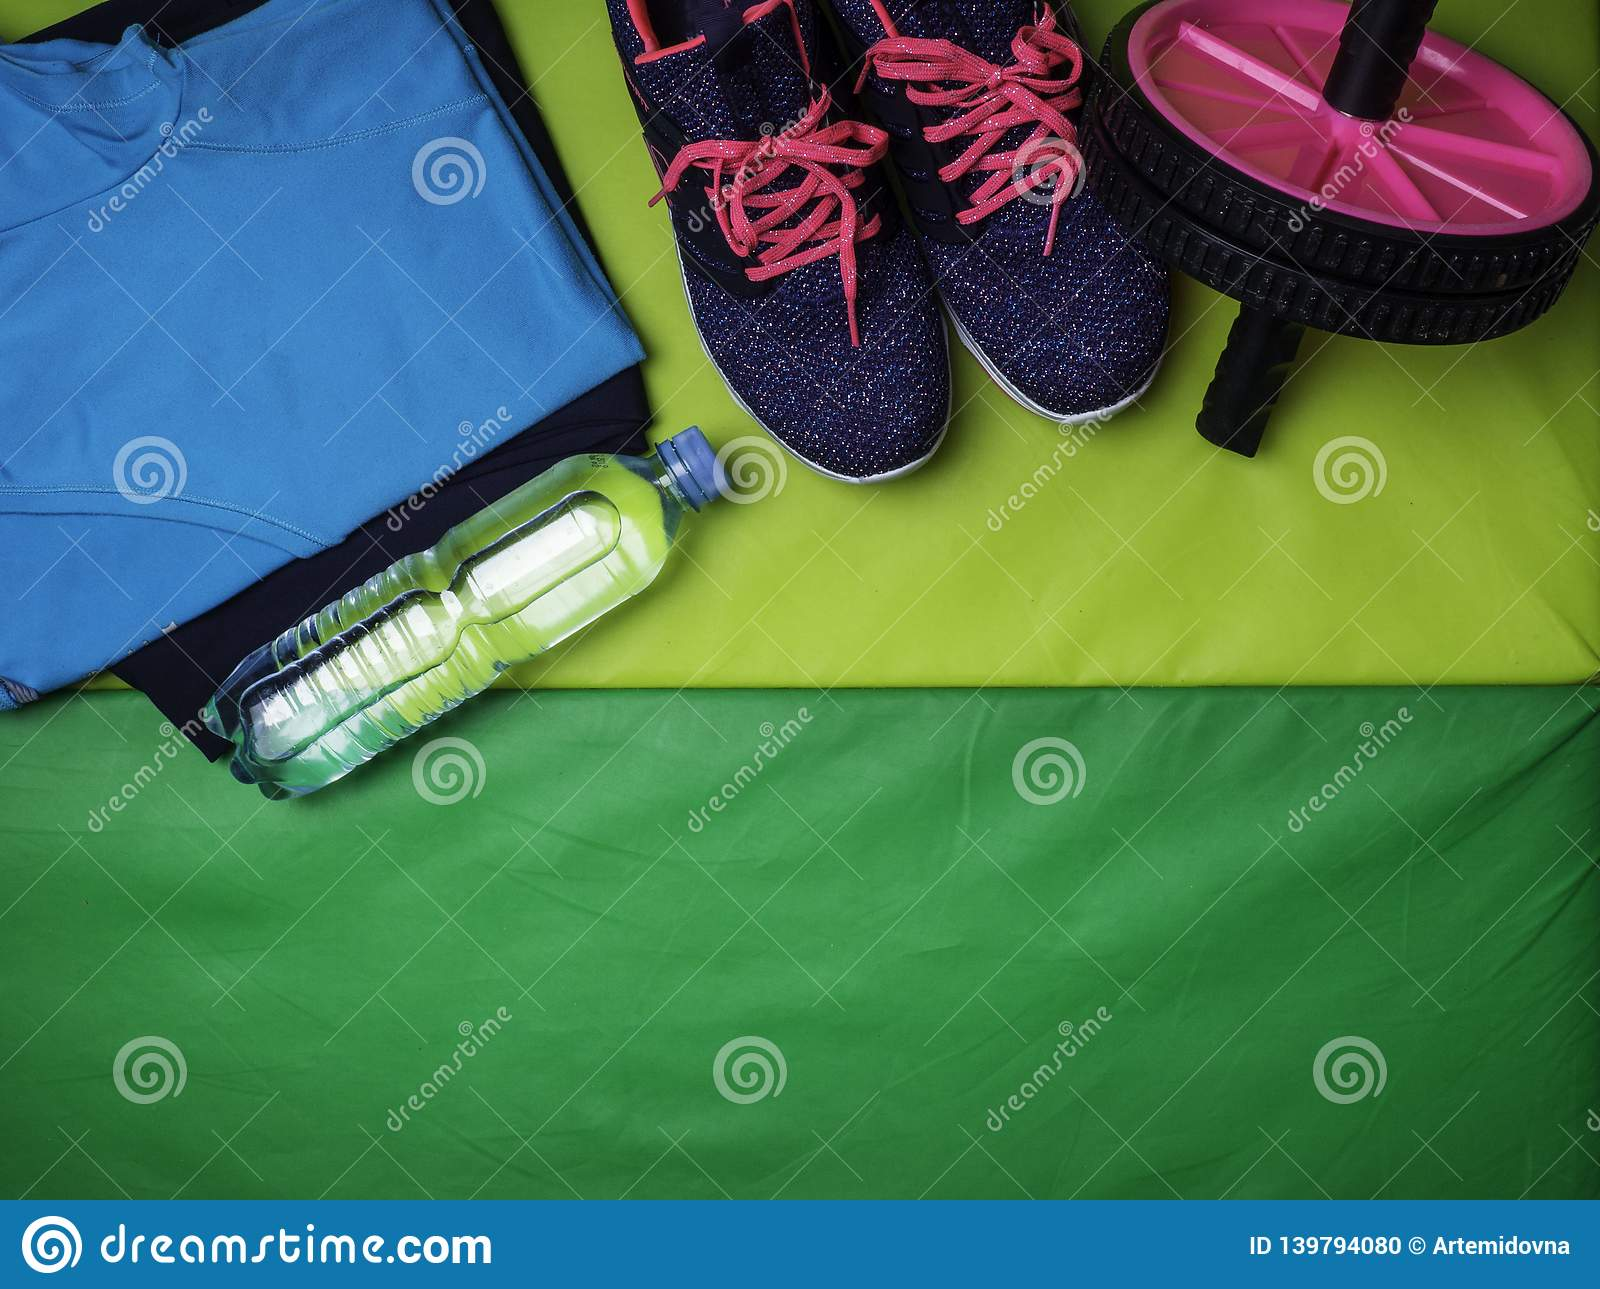 9d1dafc52df55 View of Fitness and sport equipment. Healthy lifestyle concept. Sneakers,  sportswear, roll, water on green mat background, top view